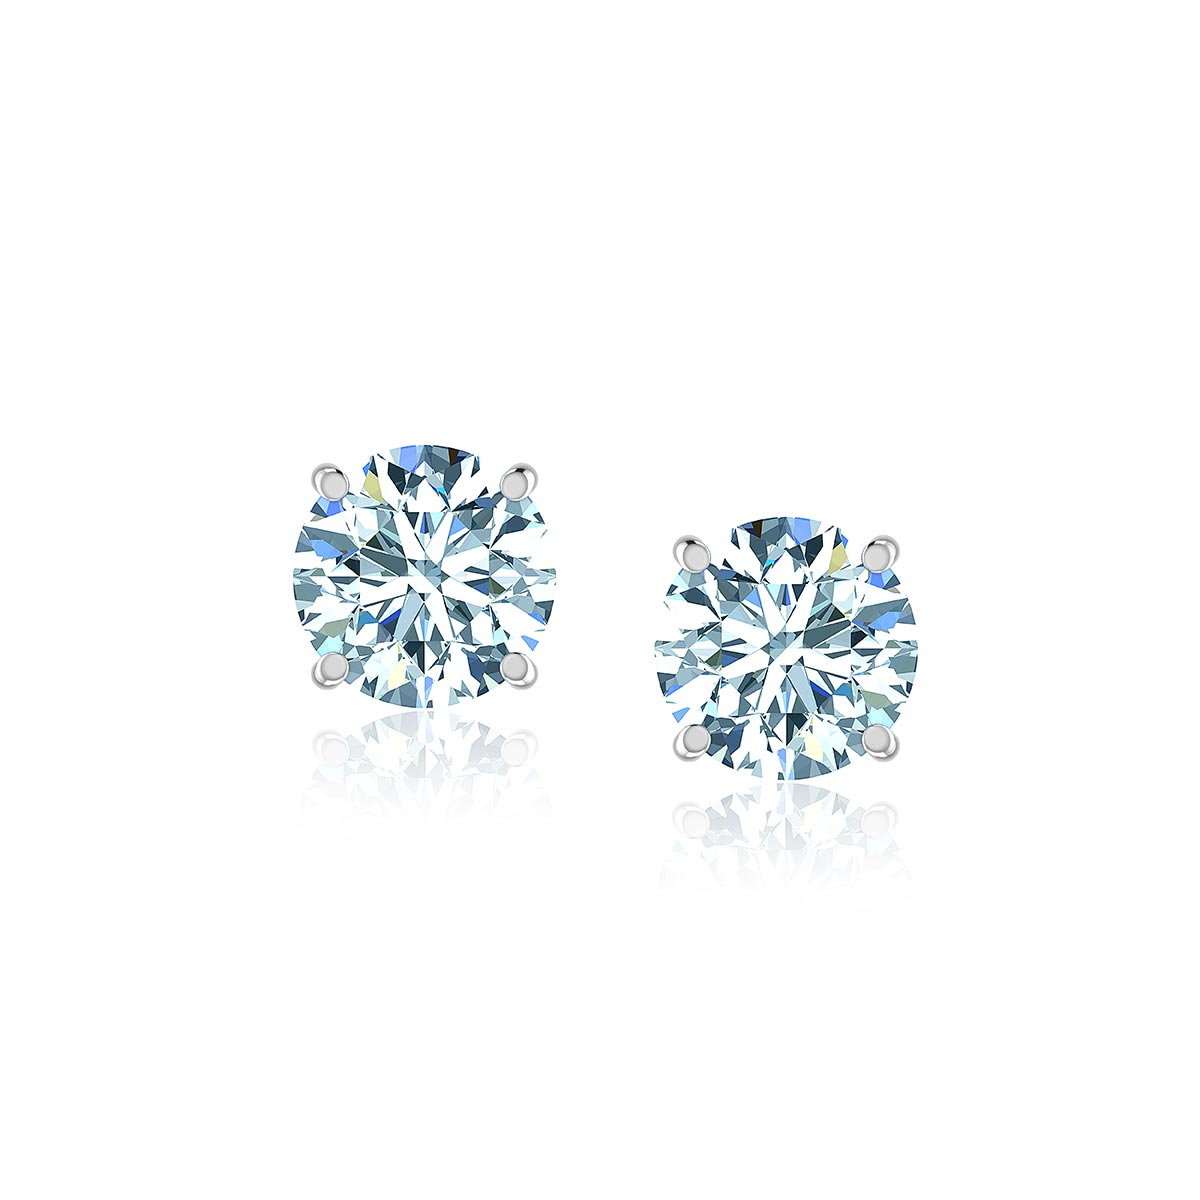 Camelopardalis Diamond Earrings  (2 CT. TW.)